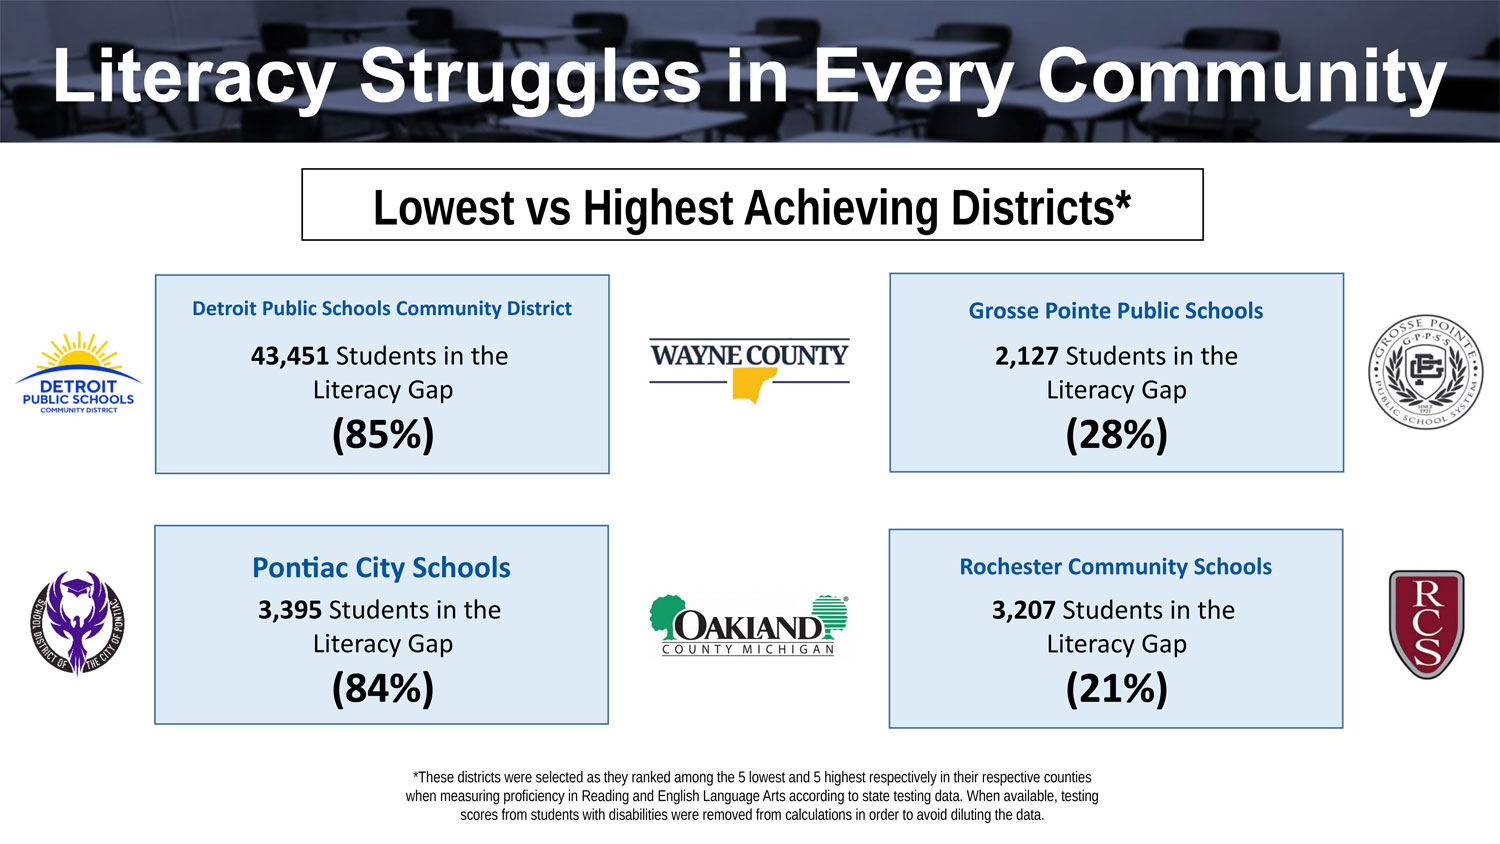 Lowest vs Highest Achieving Districts Chart